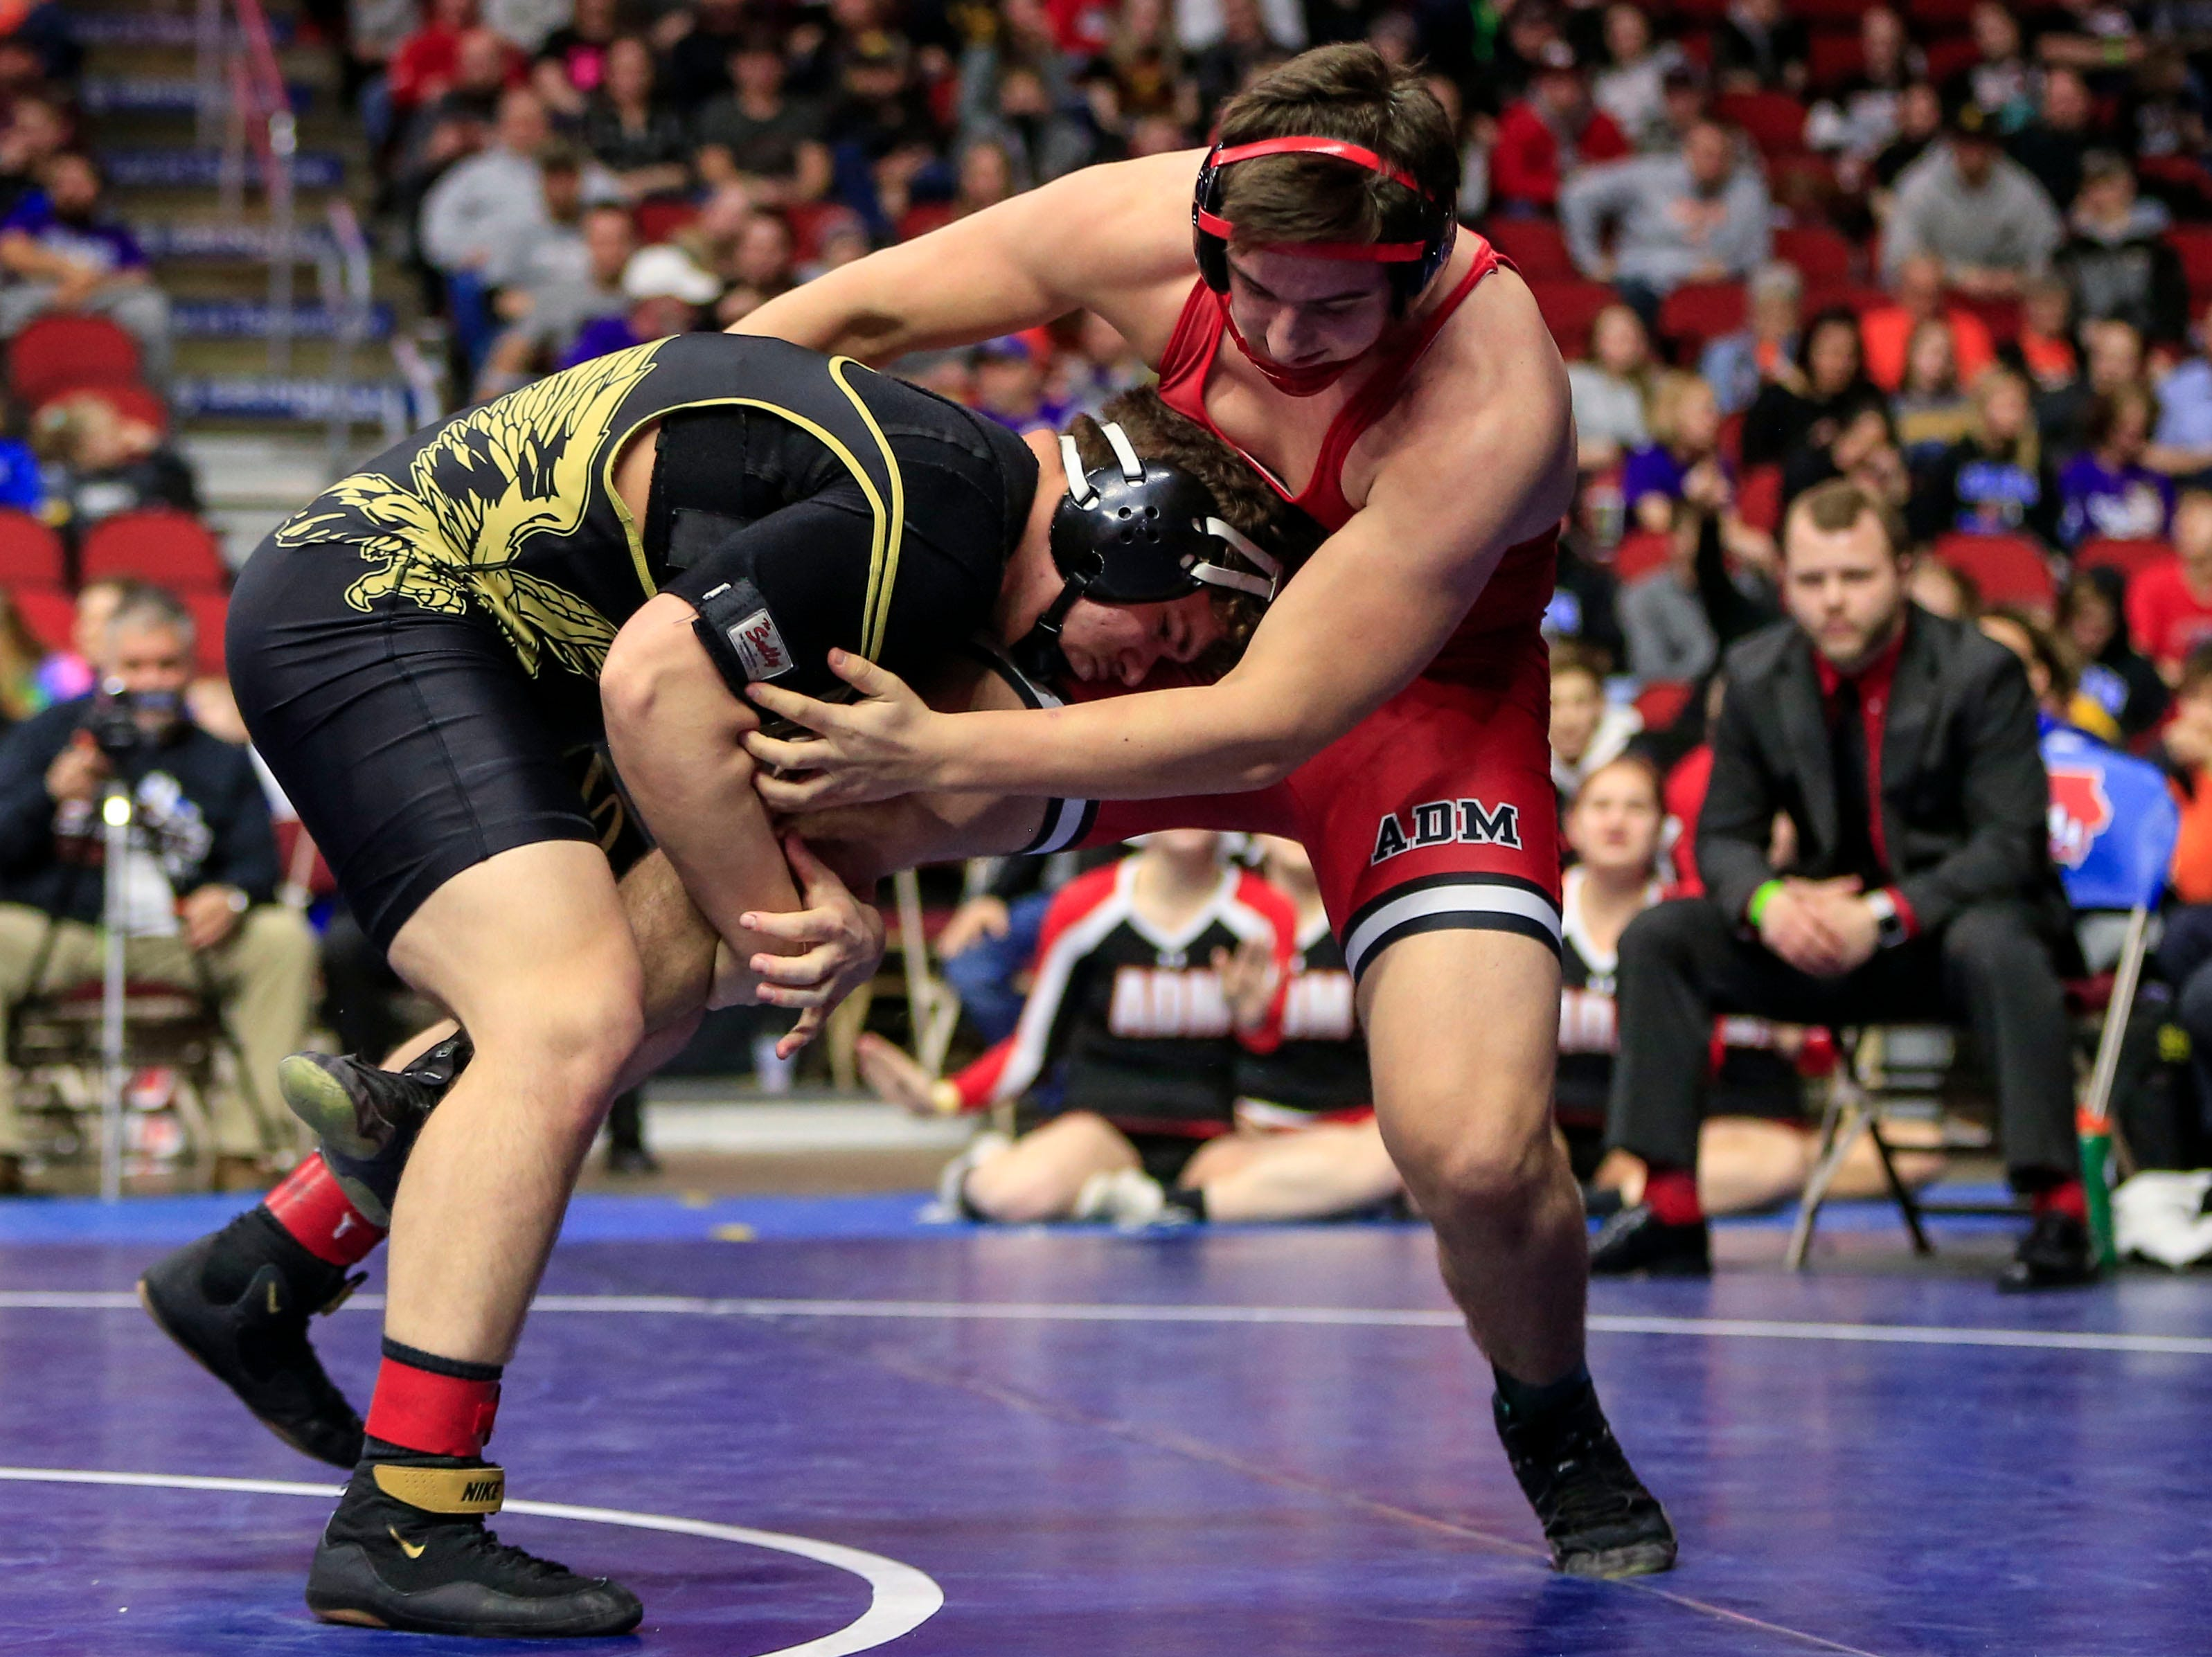 Cody Fisher of Woodward Granger beats Kaden Sutton of ADM, Adel for the 2A state wrestling championship at 220 pounds Saturday, Feb. 16, 2019.